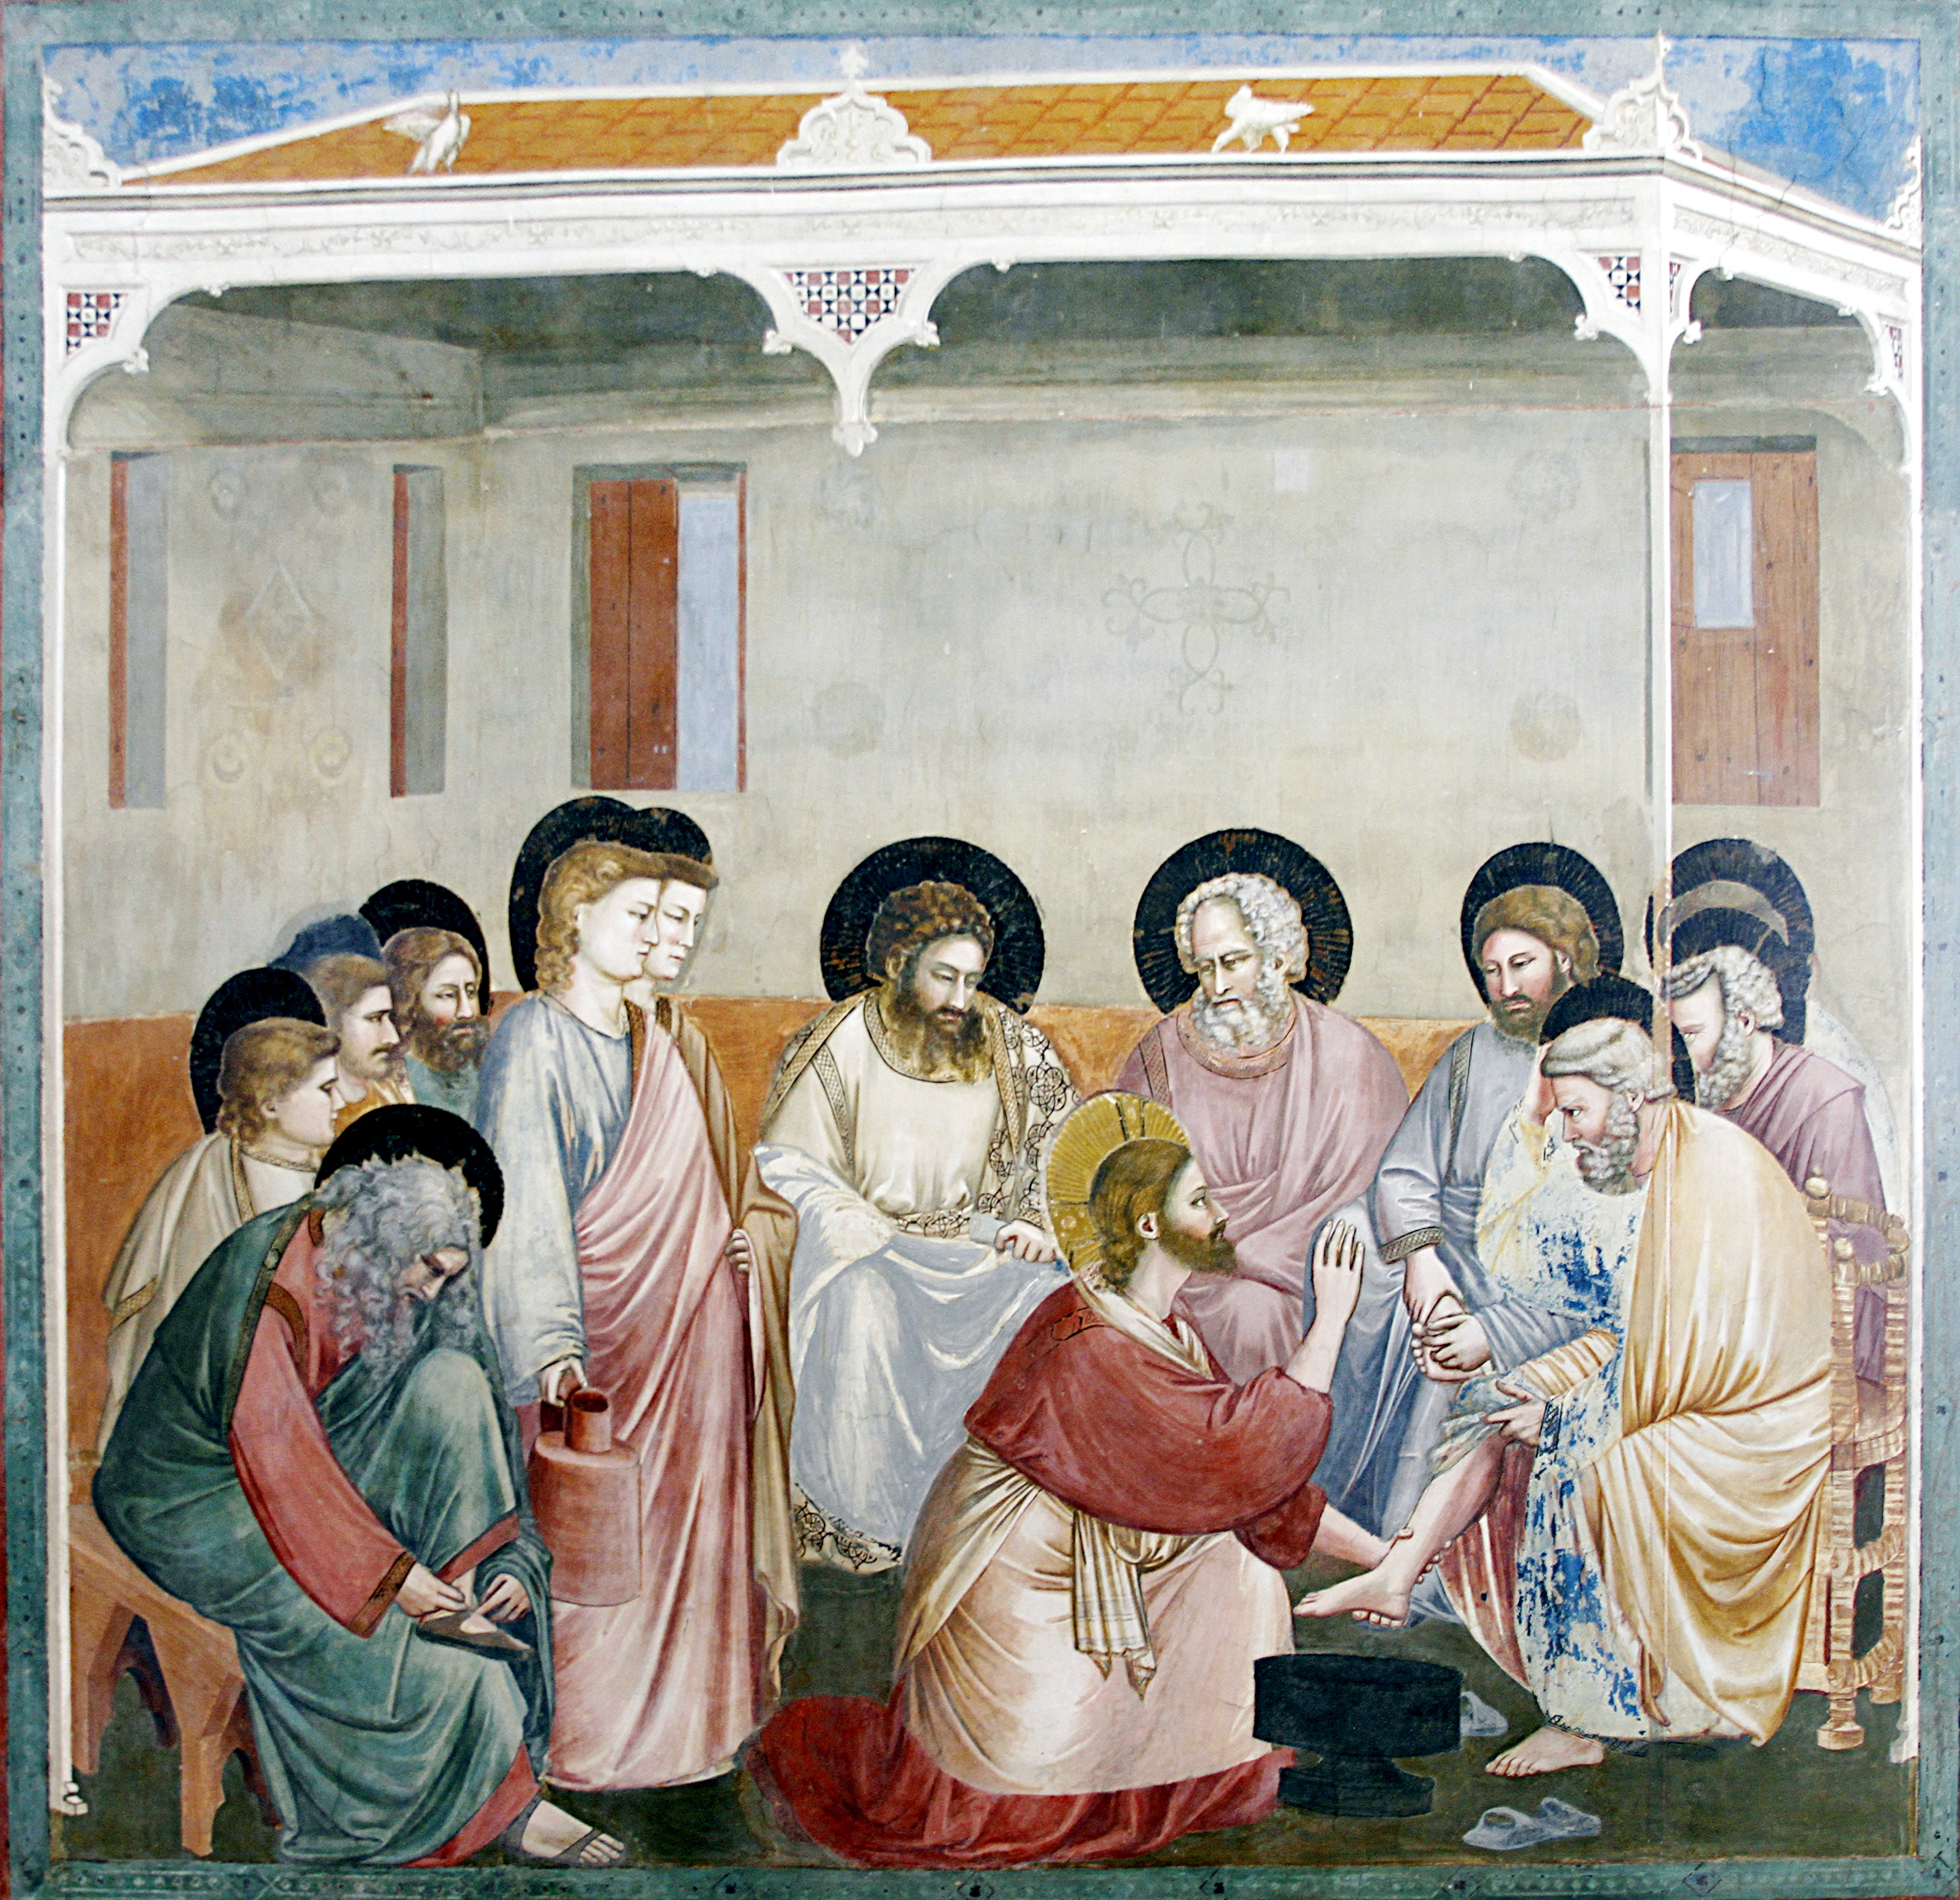 Ablution in Christianity - Wikipedia